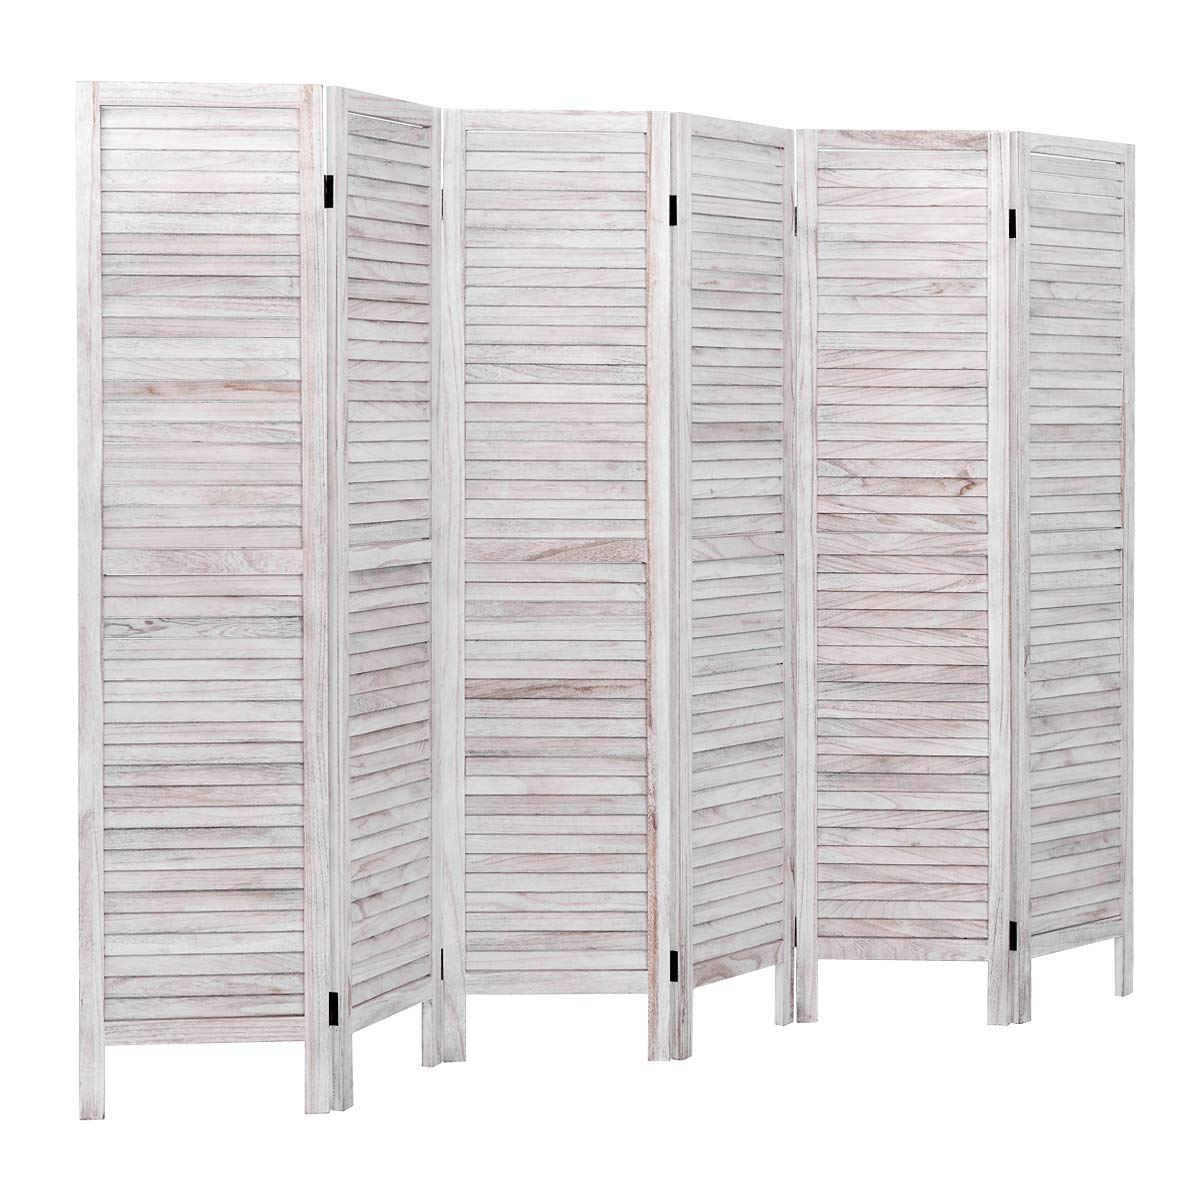 Giantex 6 Panel Wood Room Divider Screen, 5.6 Ft Tall Oriental Folding Freestanding Partition Privicy Room Divider for Home, Office, Restaurant, Bedroom (White) by Giantex